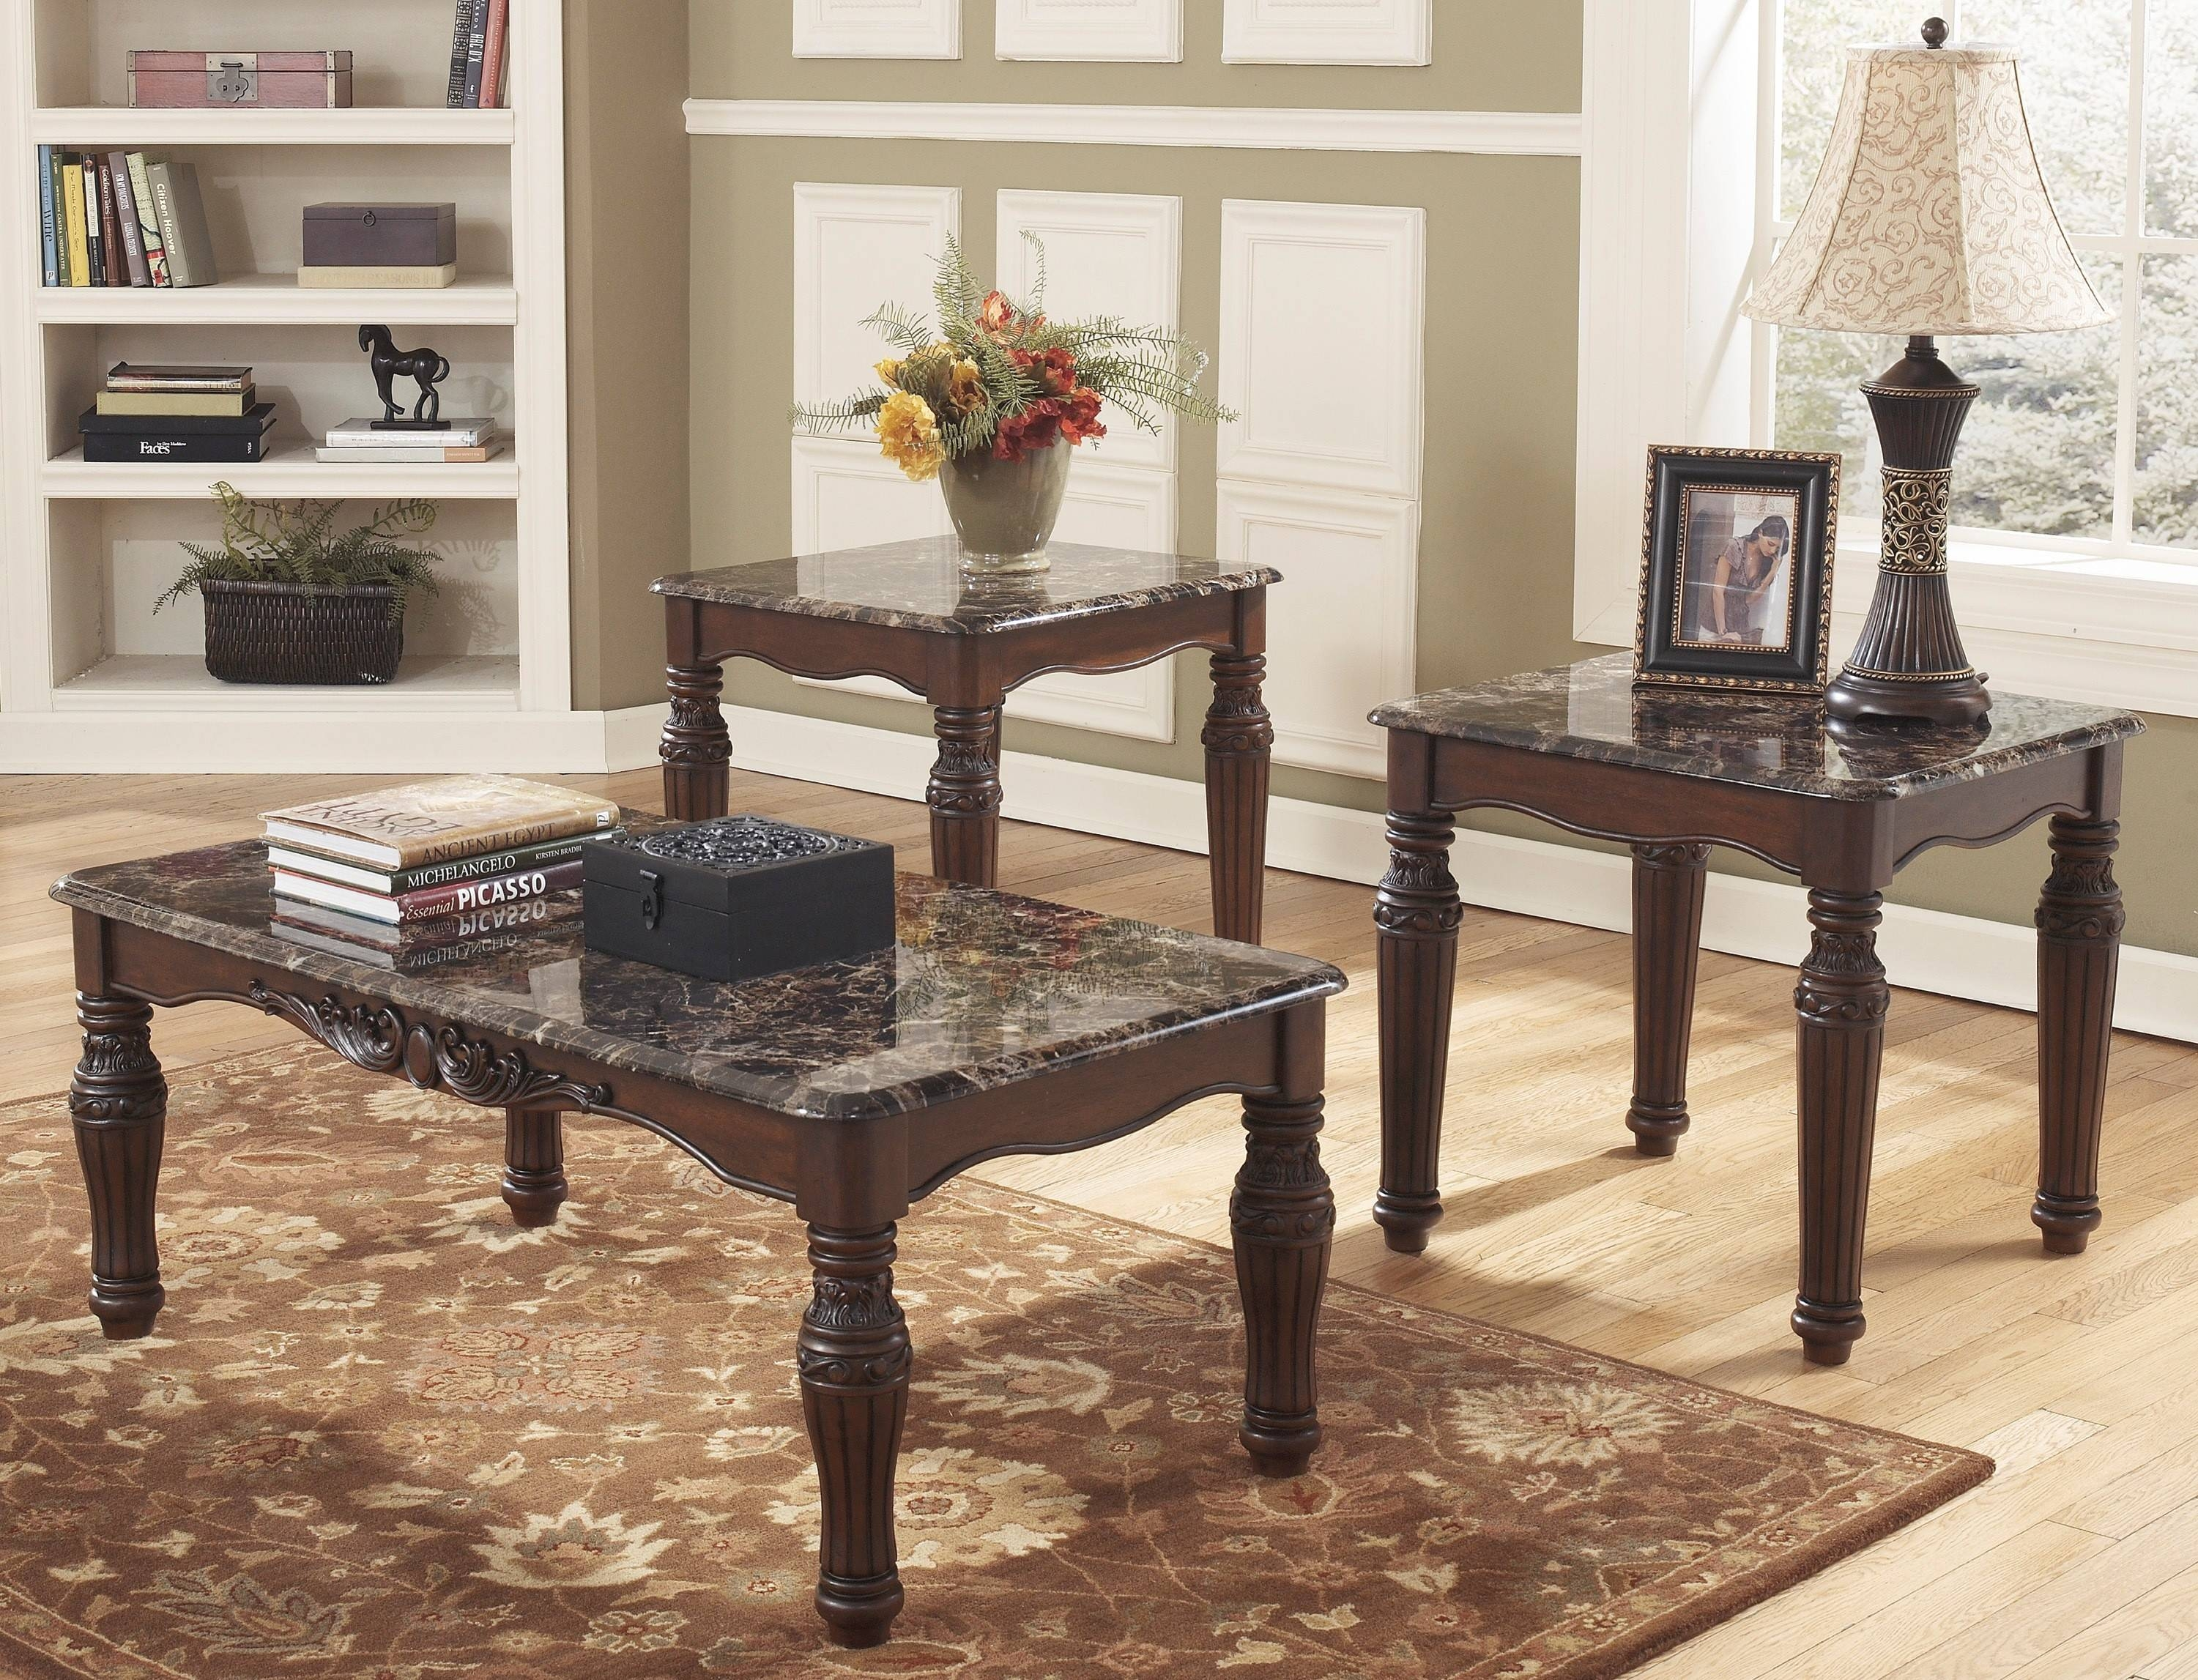 Buy Ashley Furniture T533-13 North Shore 3 Piece Coffee Table Set for 2 Piece Coffee Table Sets (Image 12 of 30)